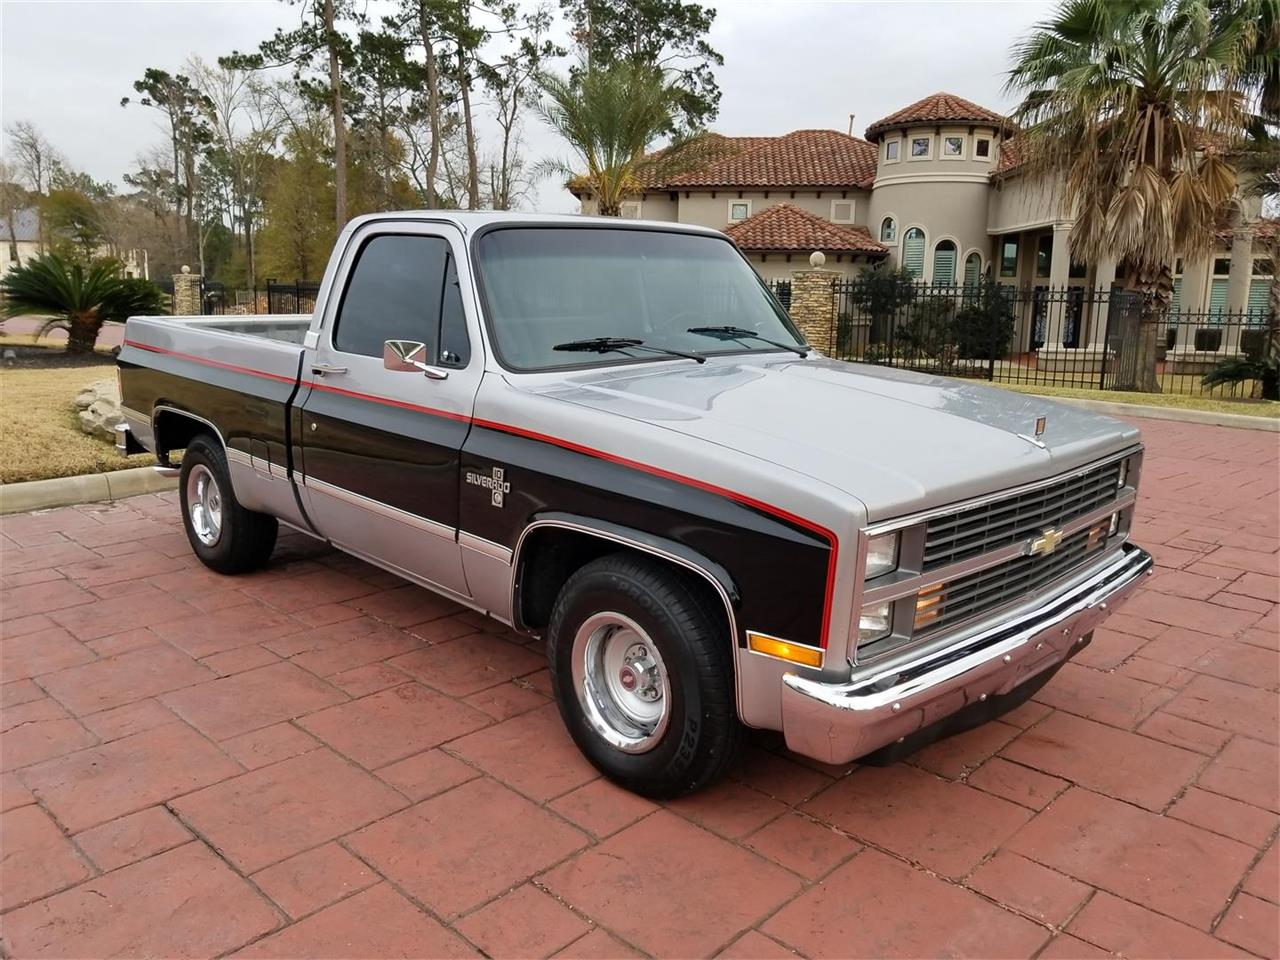 Large Picture of 1984 Chevrolet C10 located in CONROE Texas - $18,900.00 Offered by Texas Trucks and Classics - MOA2